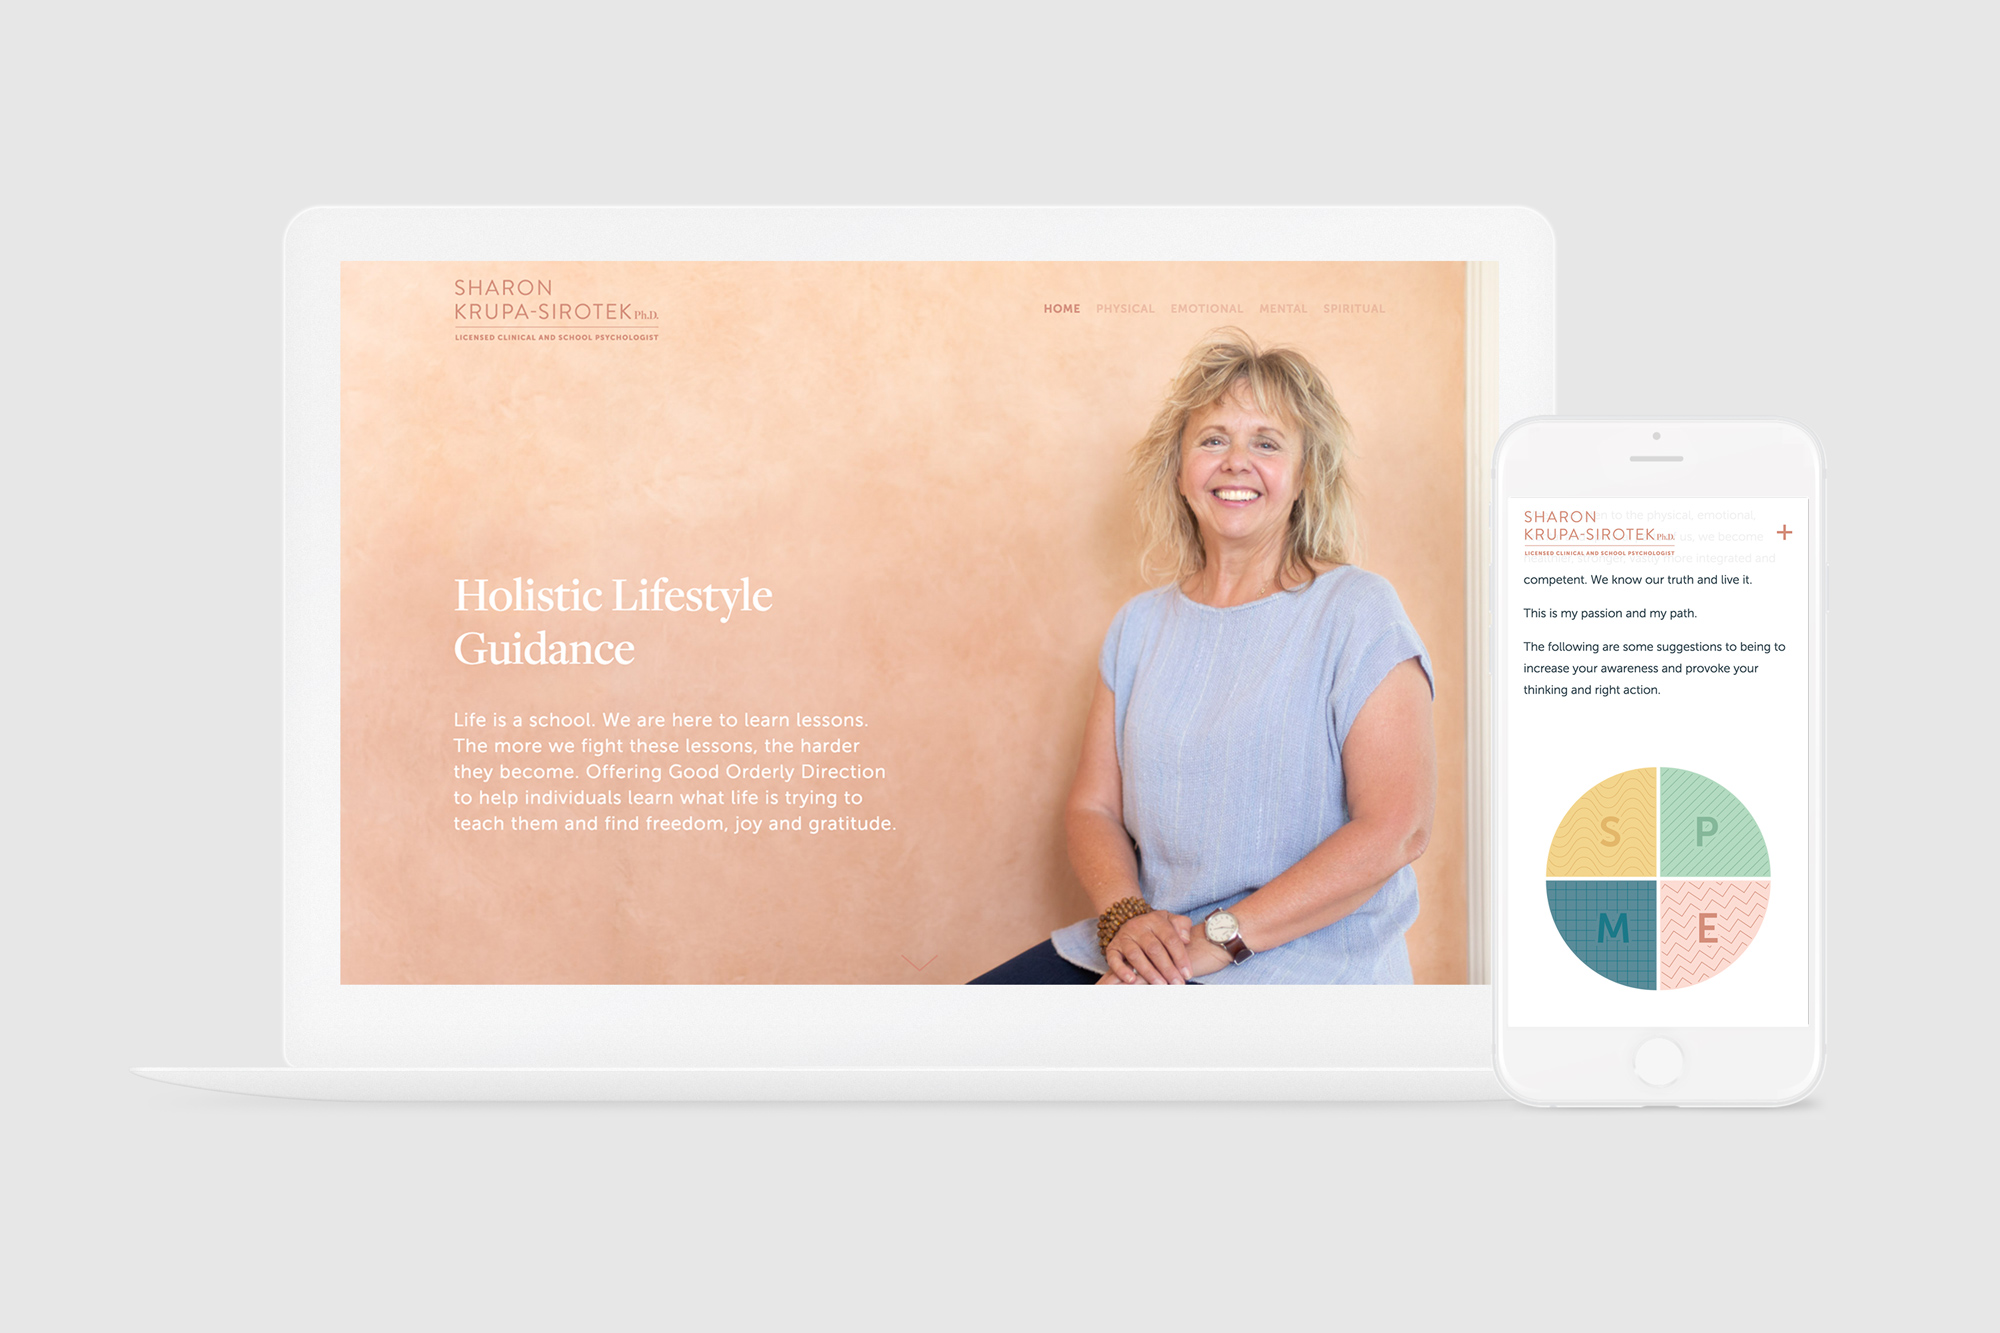 The responsive website we designed for Sharon Sirotek, shown on a computer and phone